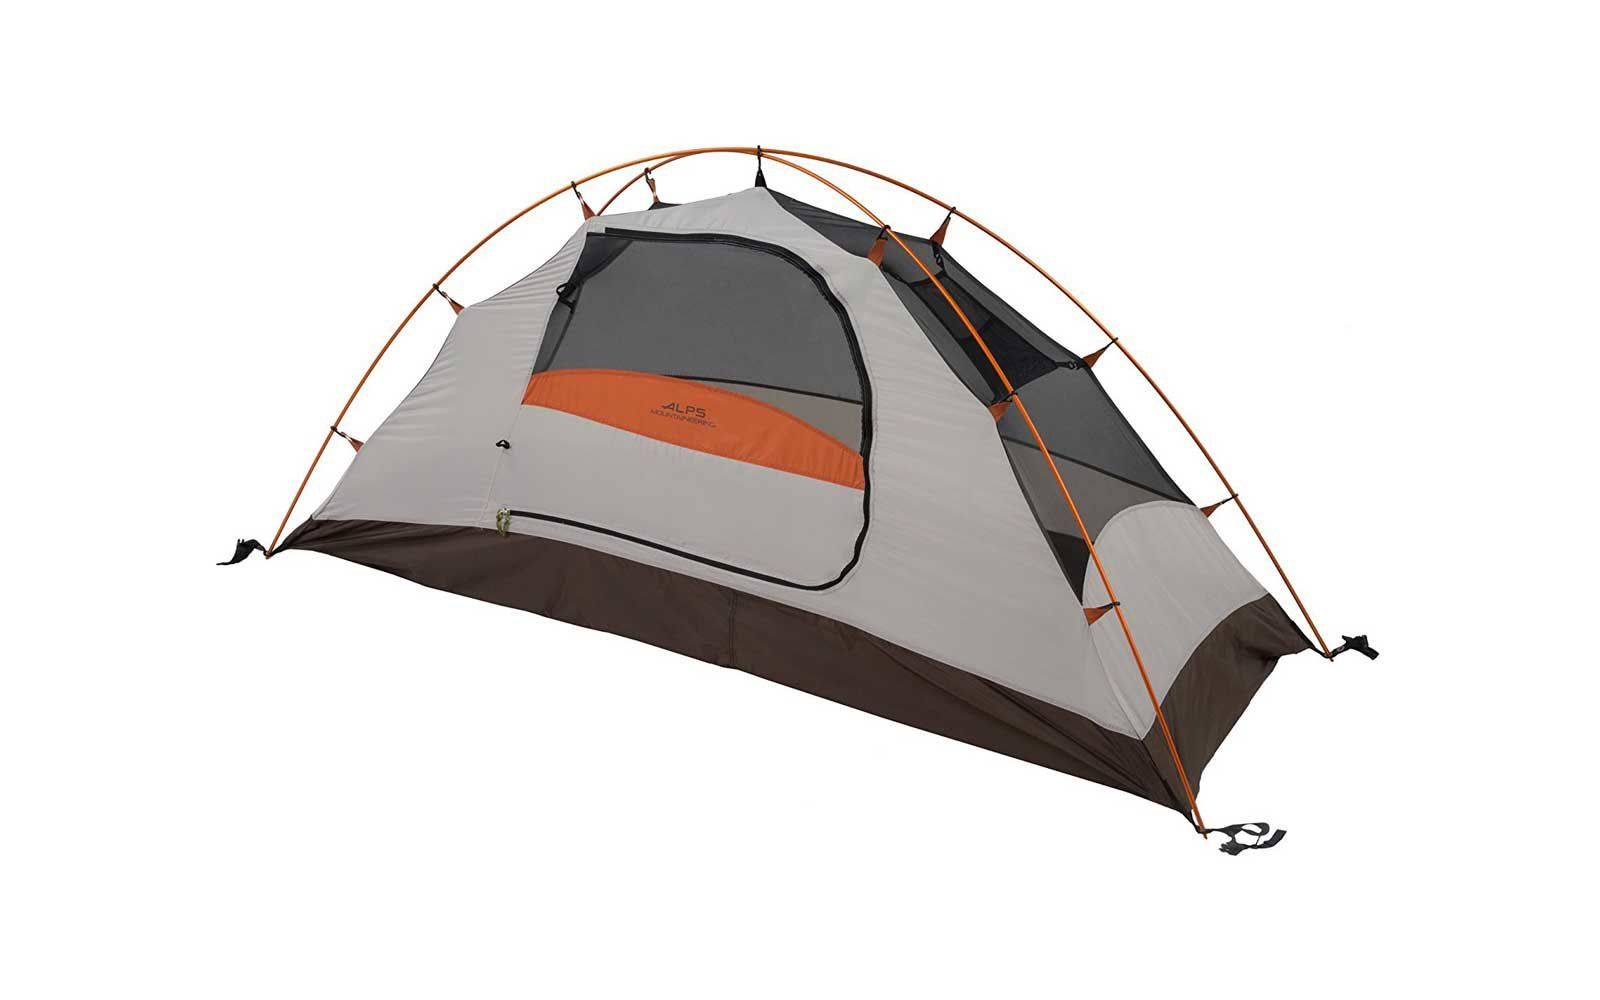 alps backpacking tent